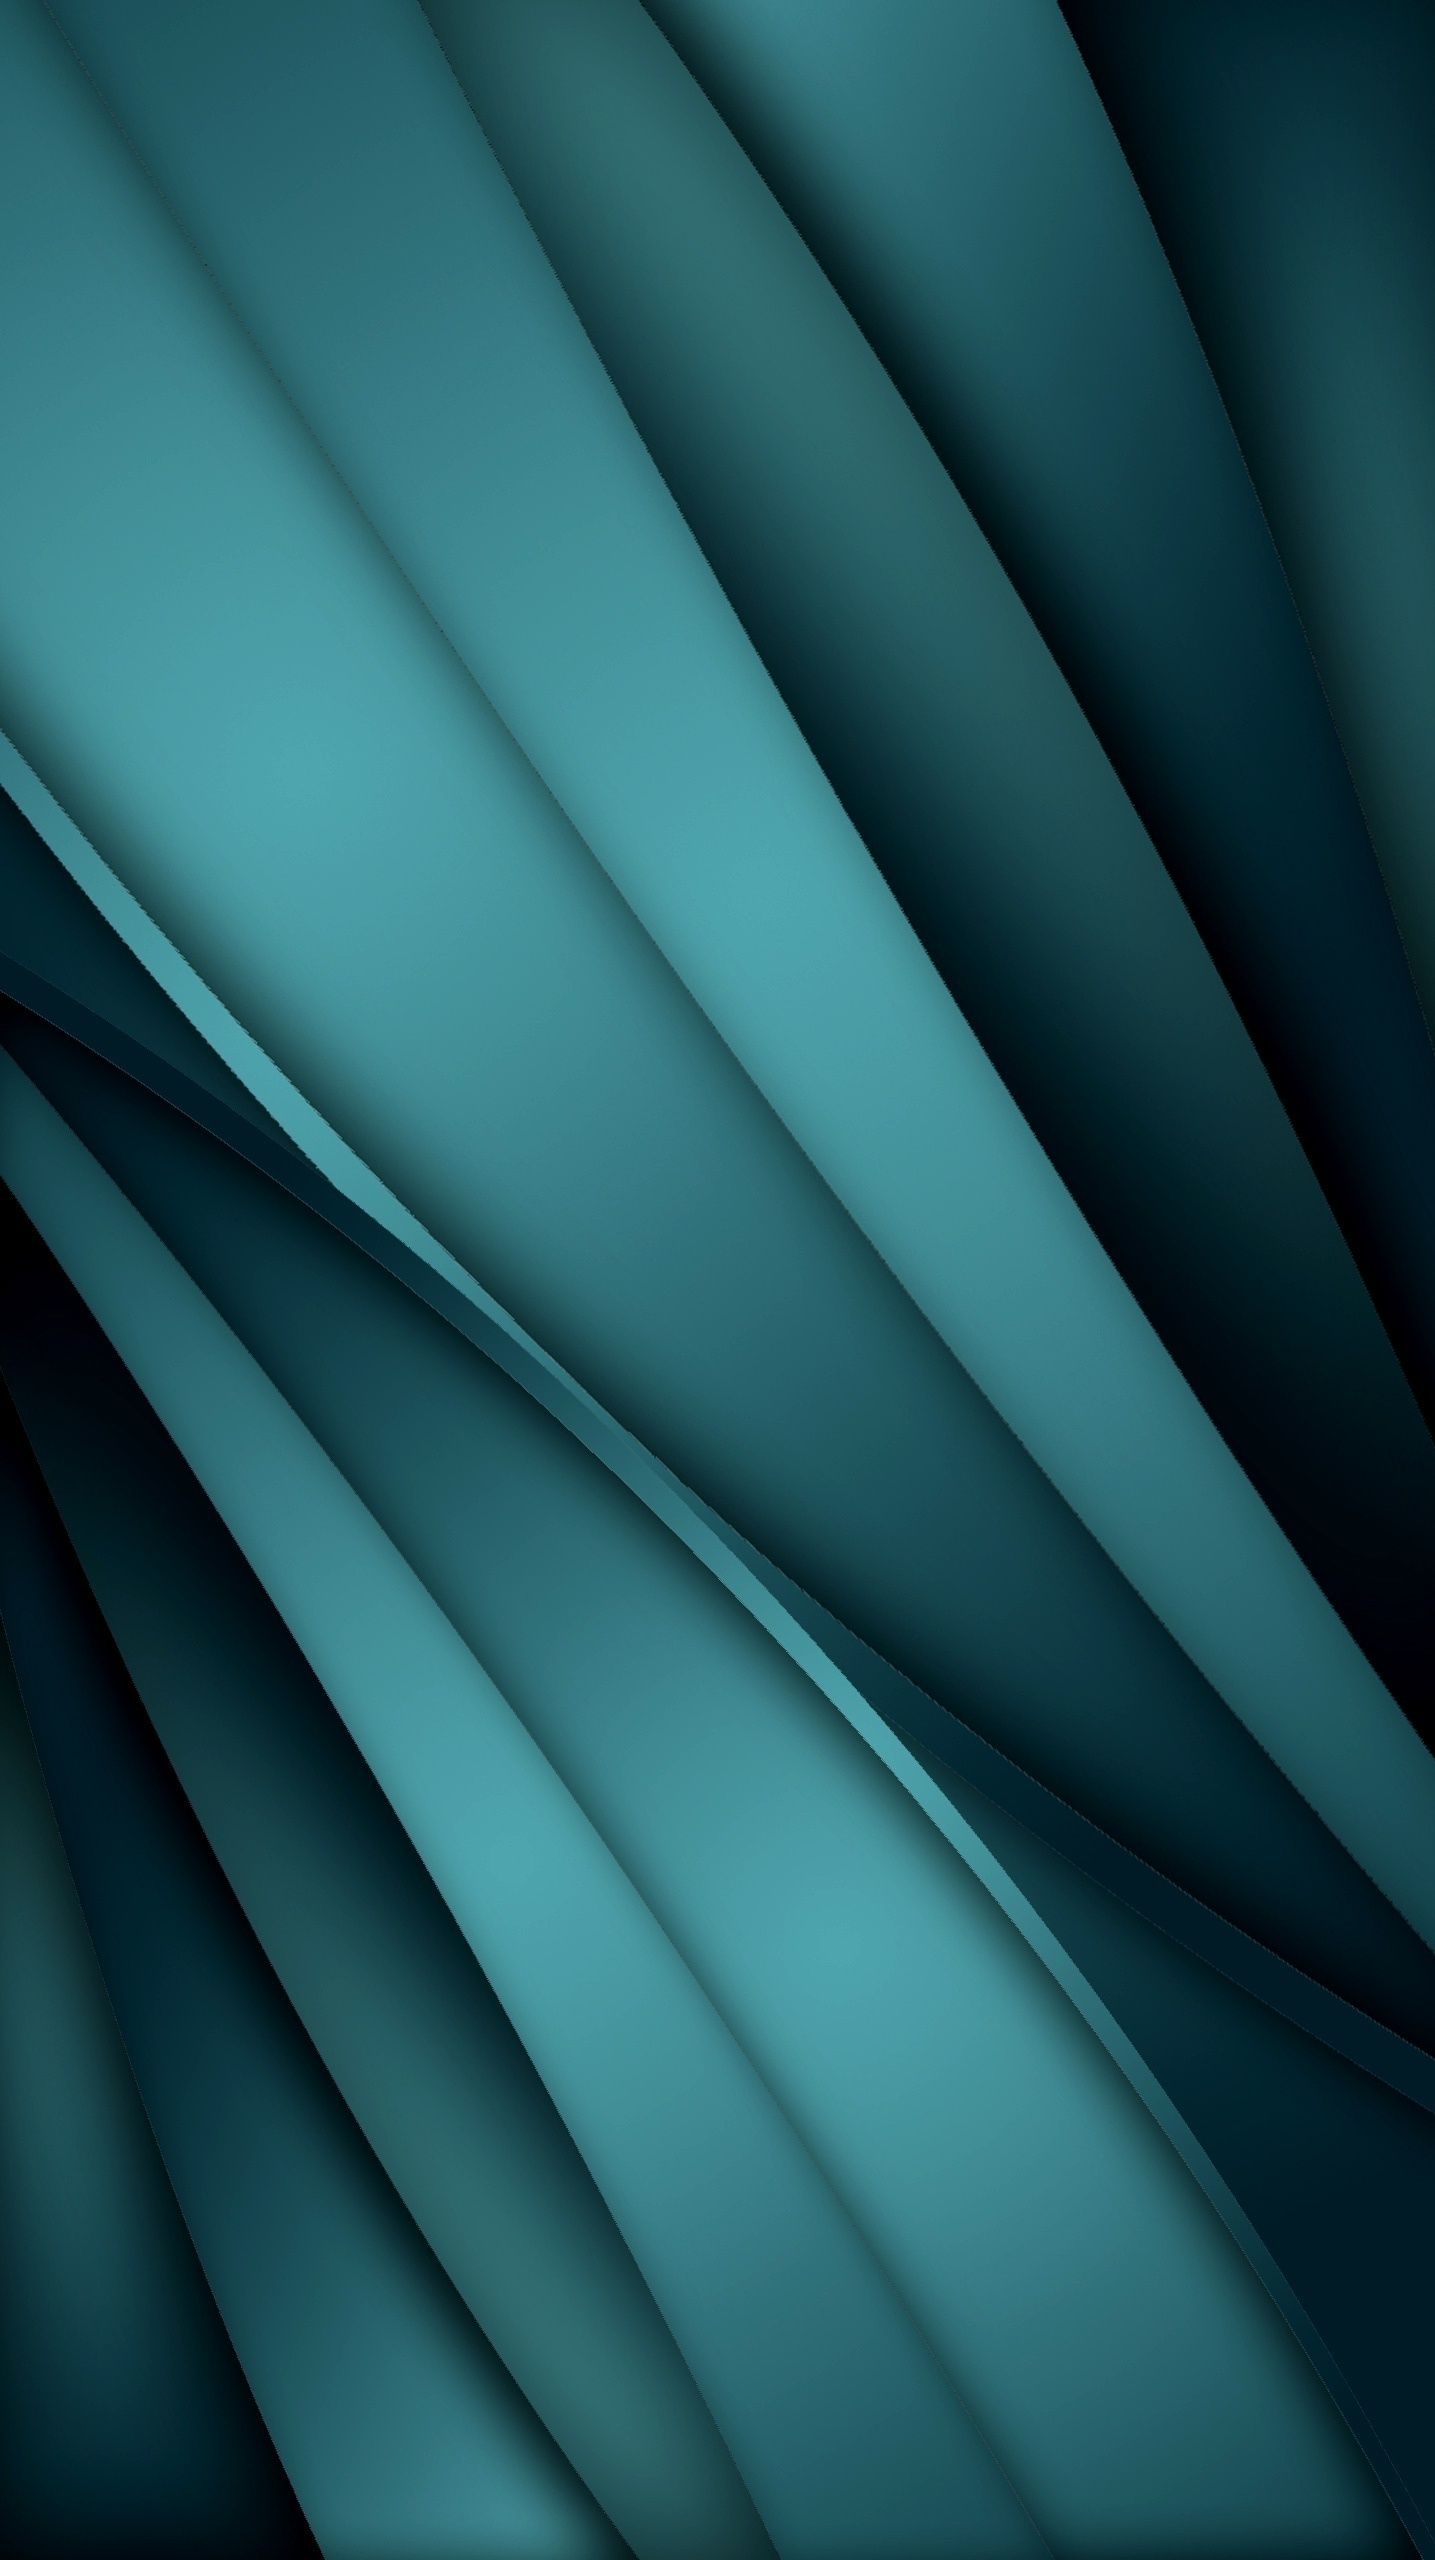 Pin by kim on Solid & Blurred Colors Teal wallpaper